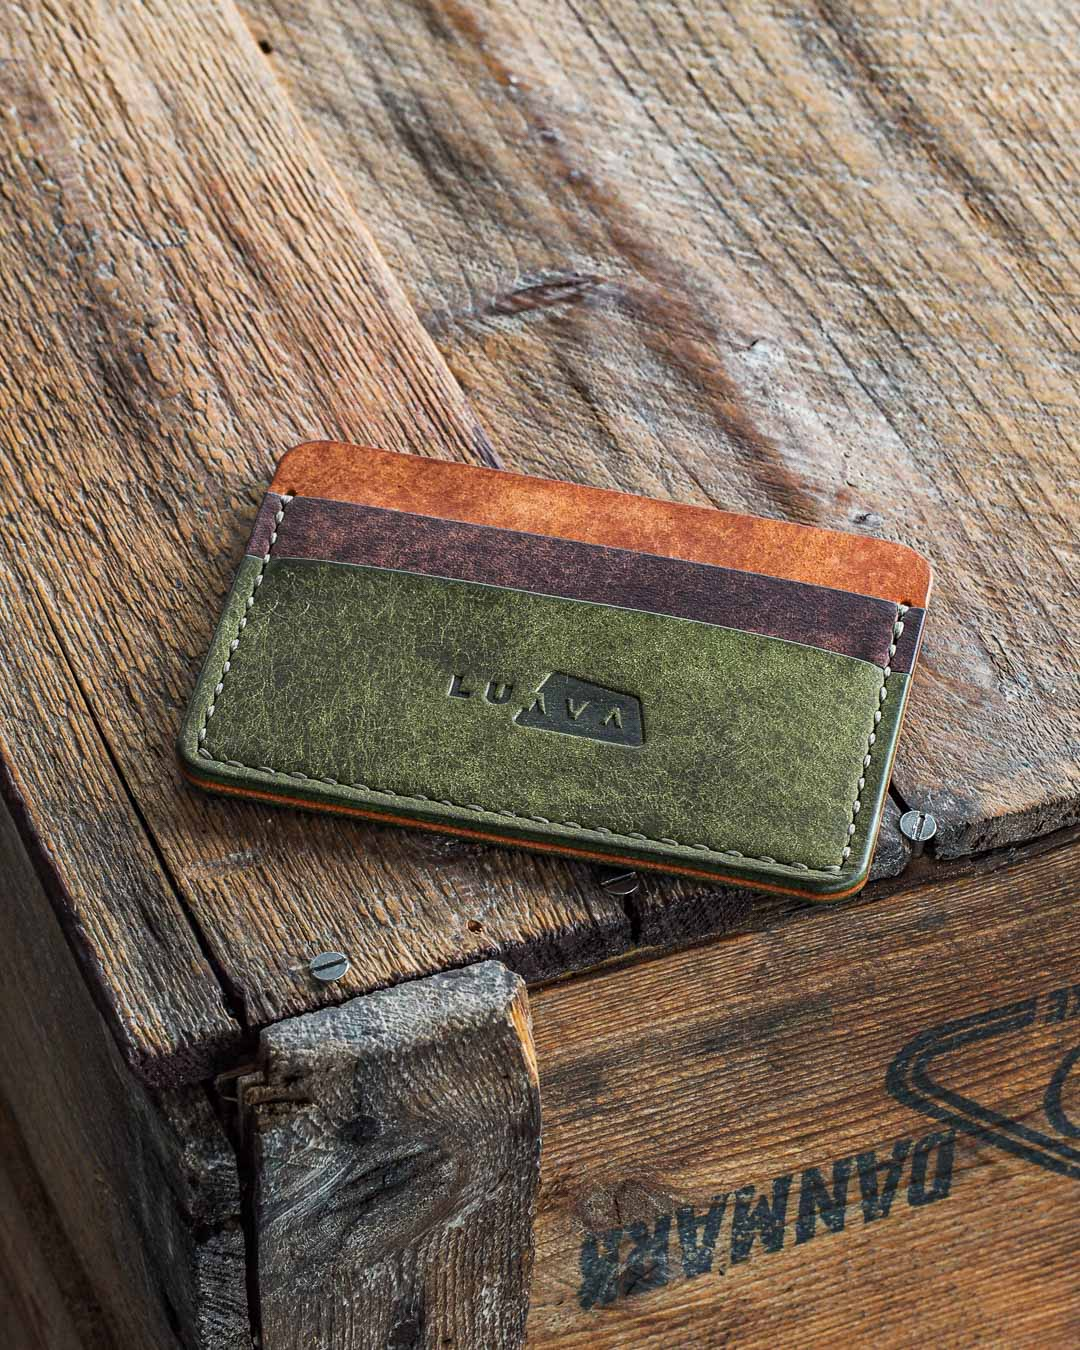 Luava handmade leather wallet handcrafted in Finland made to last a lifetime. Card holder made with veg tan leather